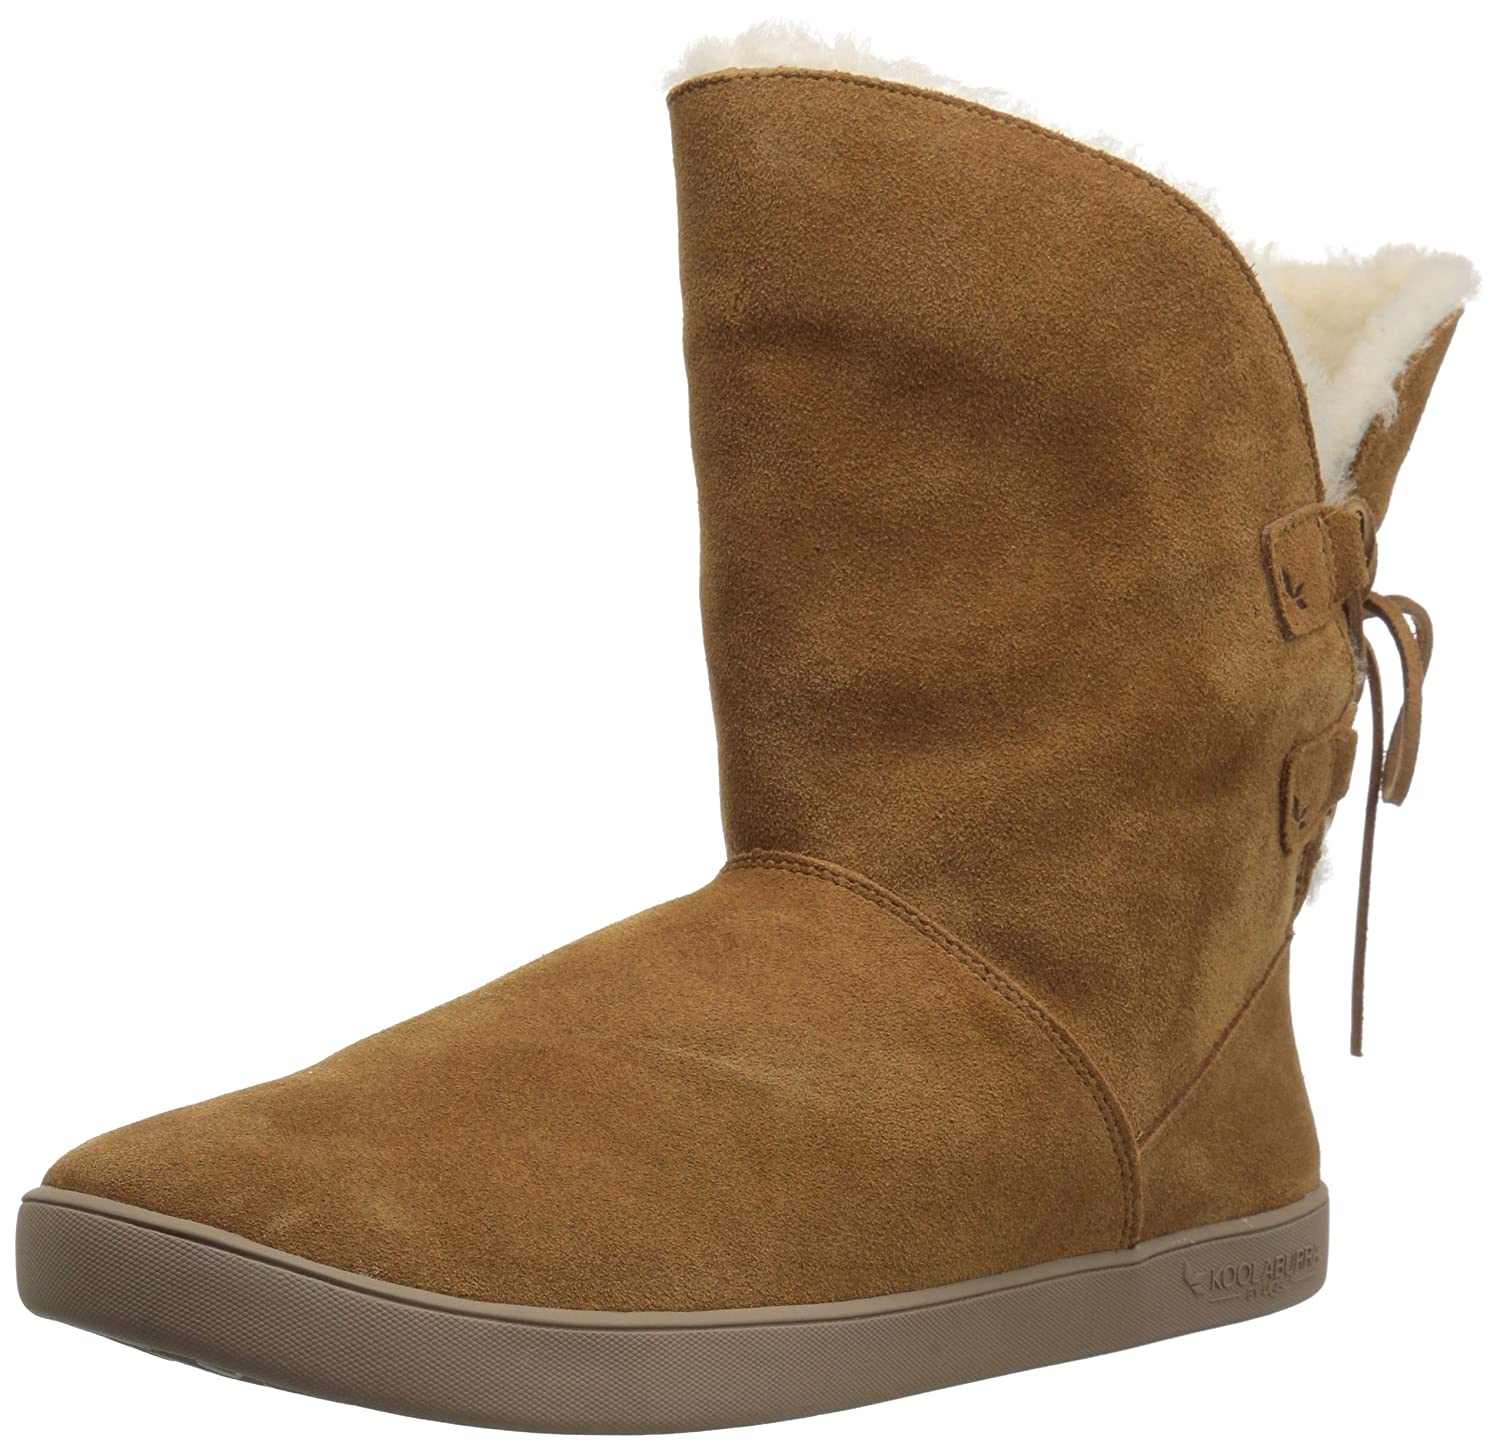 e7a743aaab2 Koolaburra by UGG Women's Shazi Short Fashion Boot: Amazon.co.uk ...